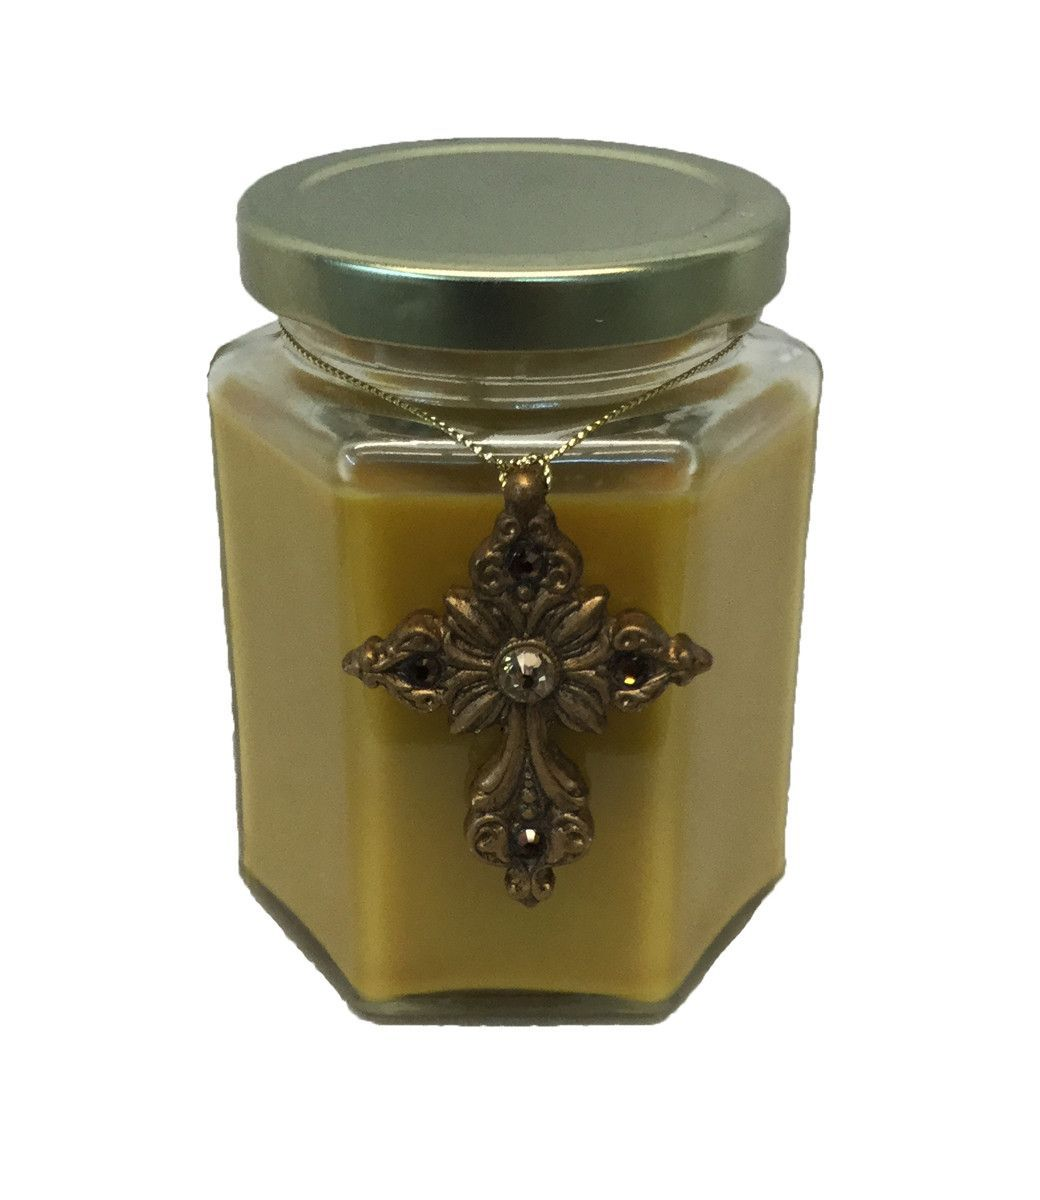 Christmas Candle 9 oz. Winter Dreams Fragrance Gold